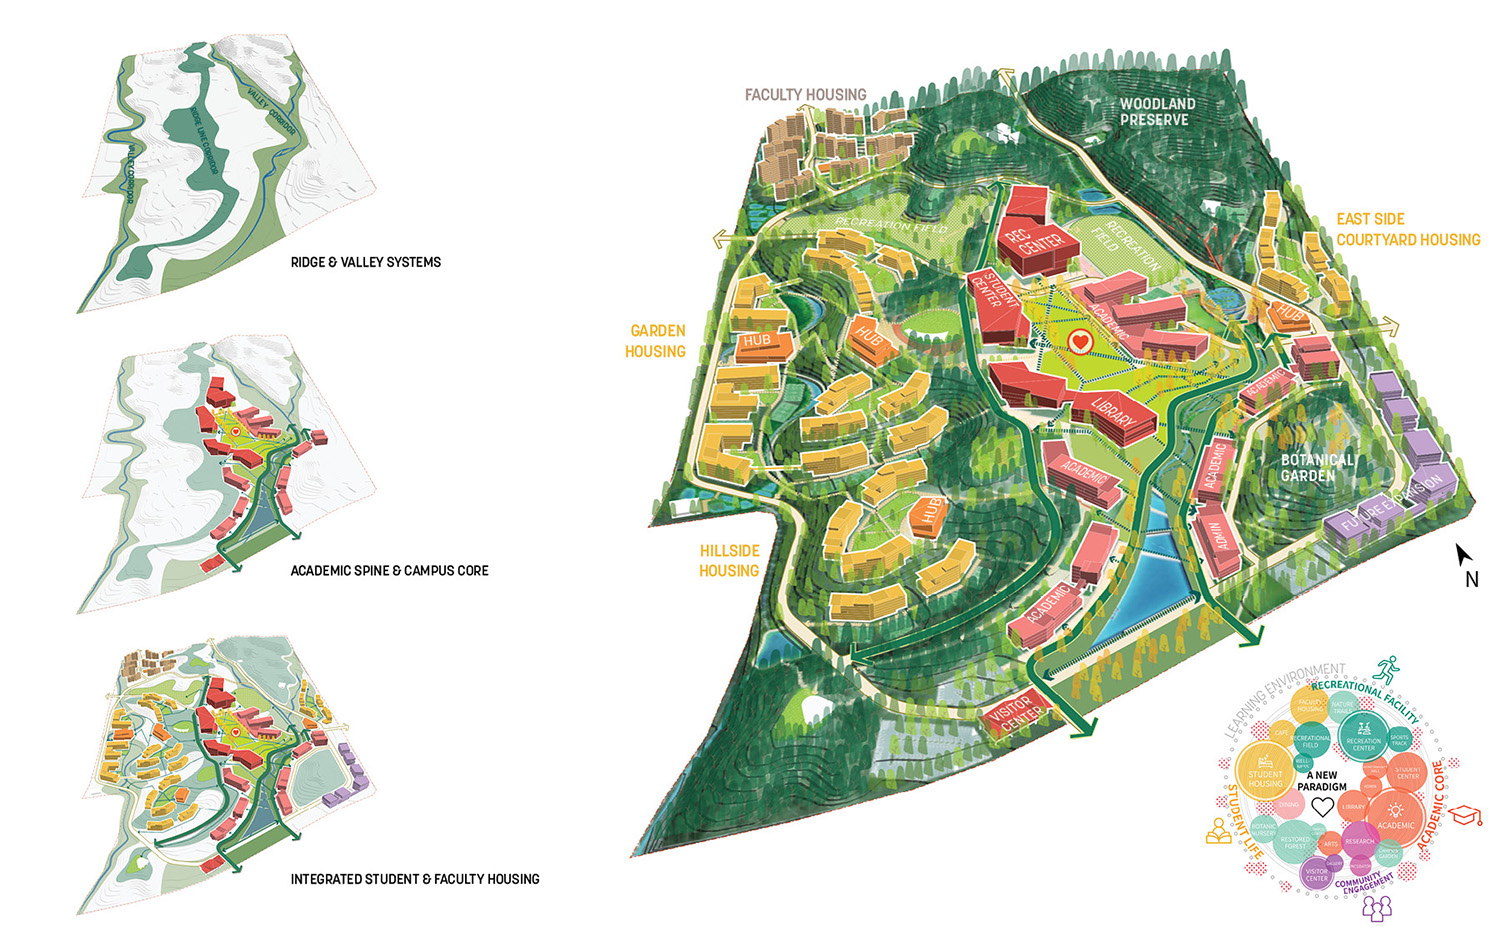 INTEGRATED CAMPUS FRAMEWORK: The ridge and valleys are the key spatial features of the campus structure, functioning as a primary campus amenity for integrated learning and living. SASAKI}